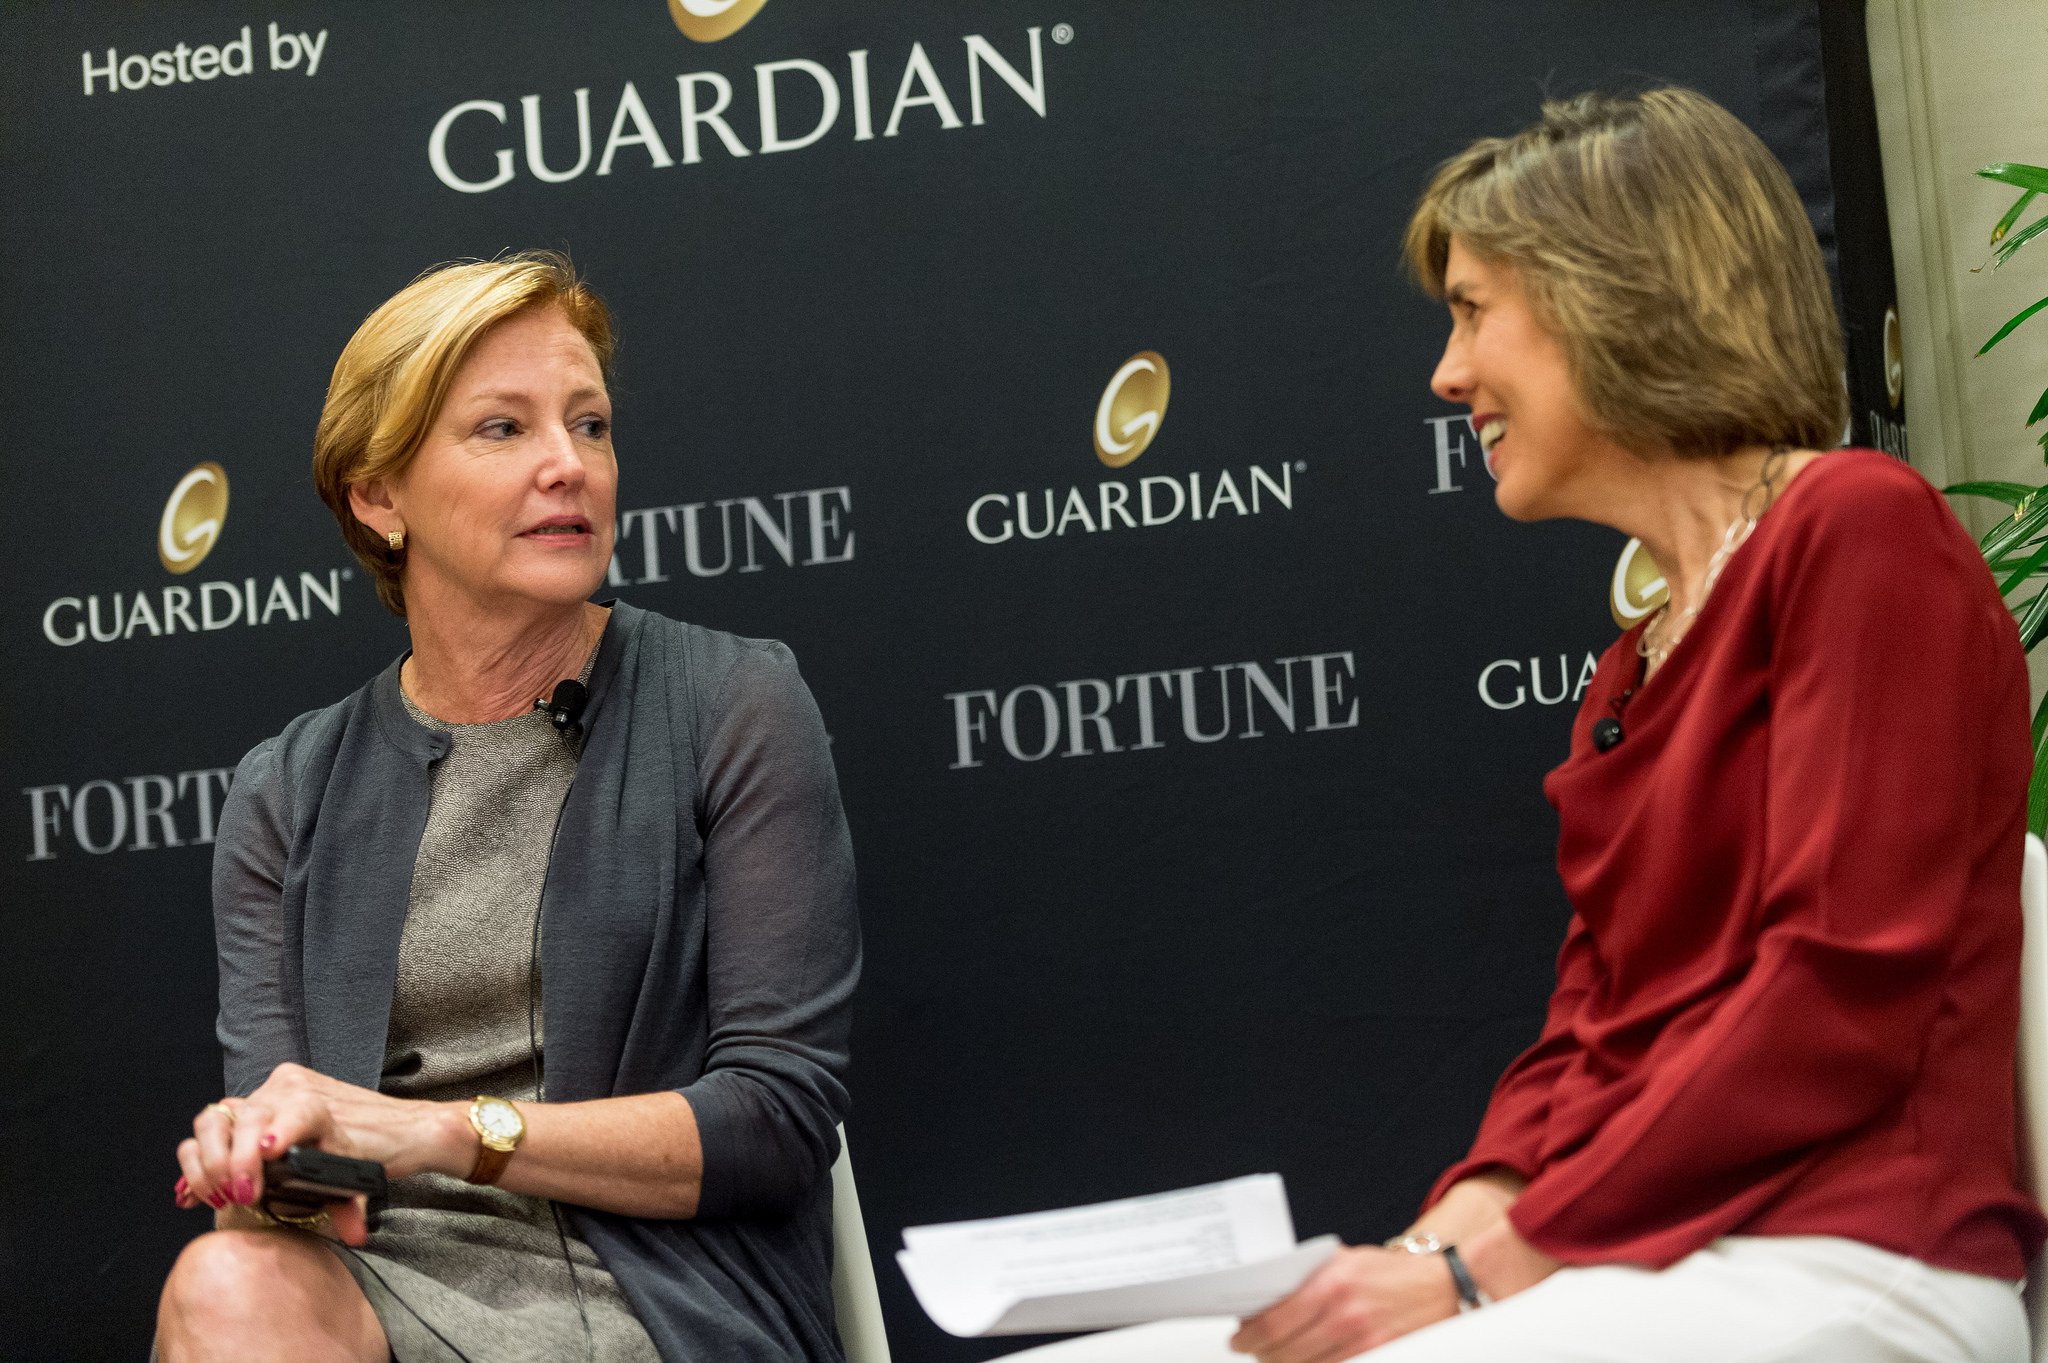 Ellen Kullman, Retired Chair and CEO, DuPont; Director, Carbon; and Pattie Sellers, Fortune at the Fortune Most Powerful Women Summit 2016 on Tuesday, October 18th, 2016 Laguna Niguel, CA